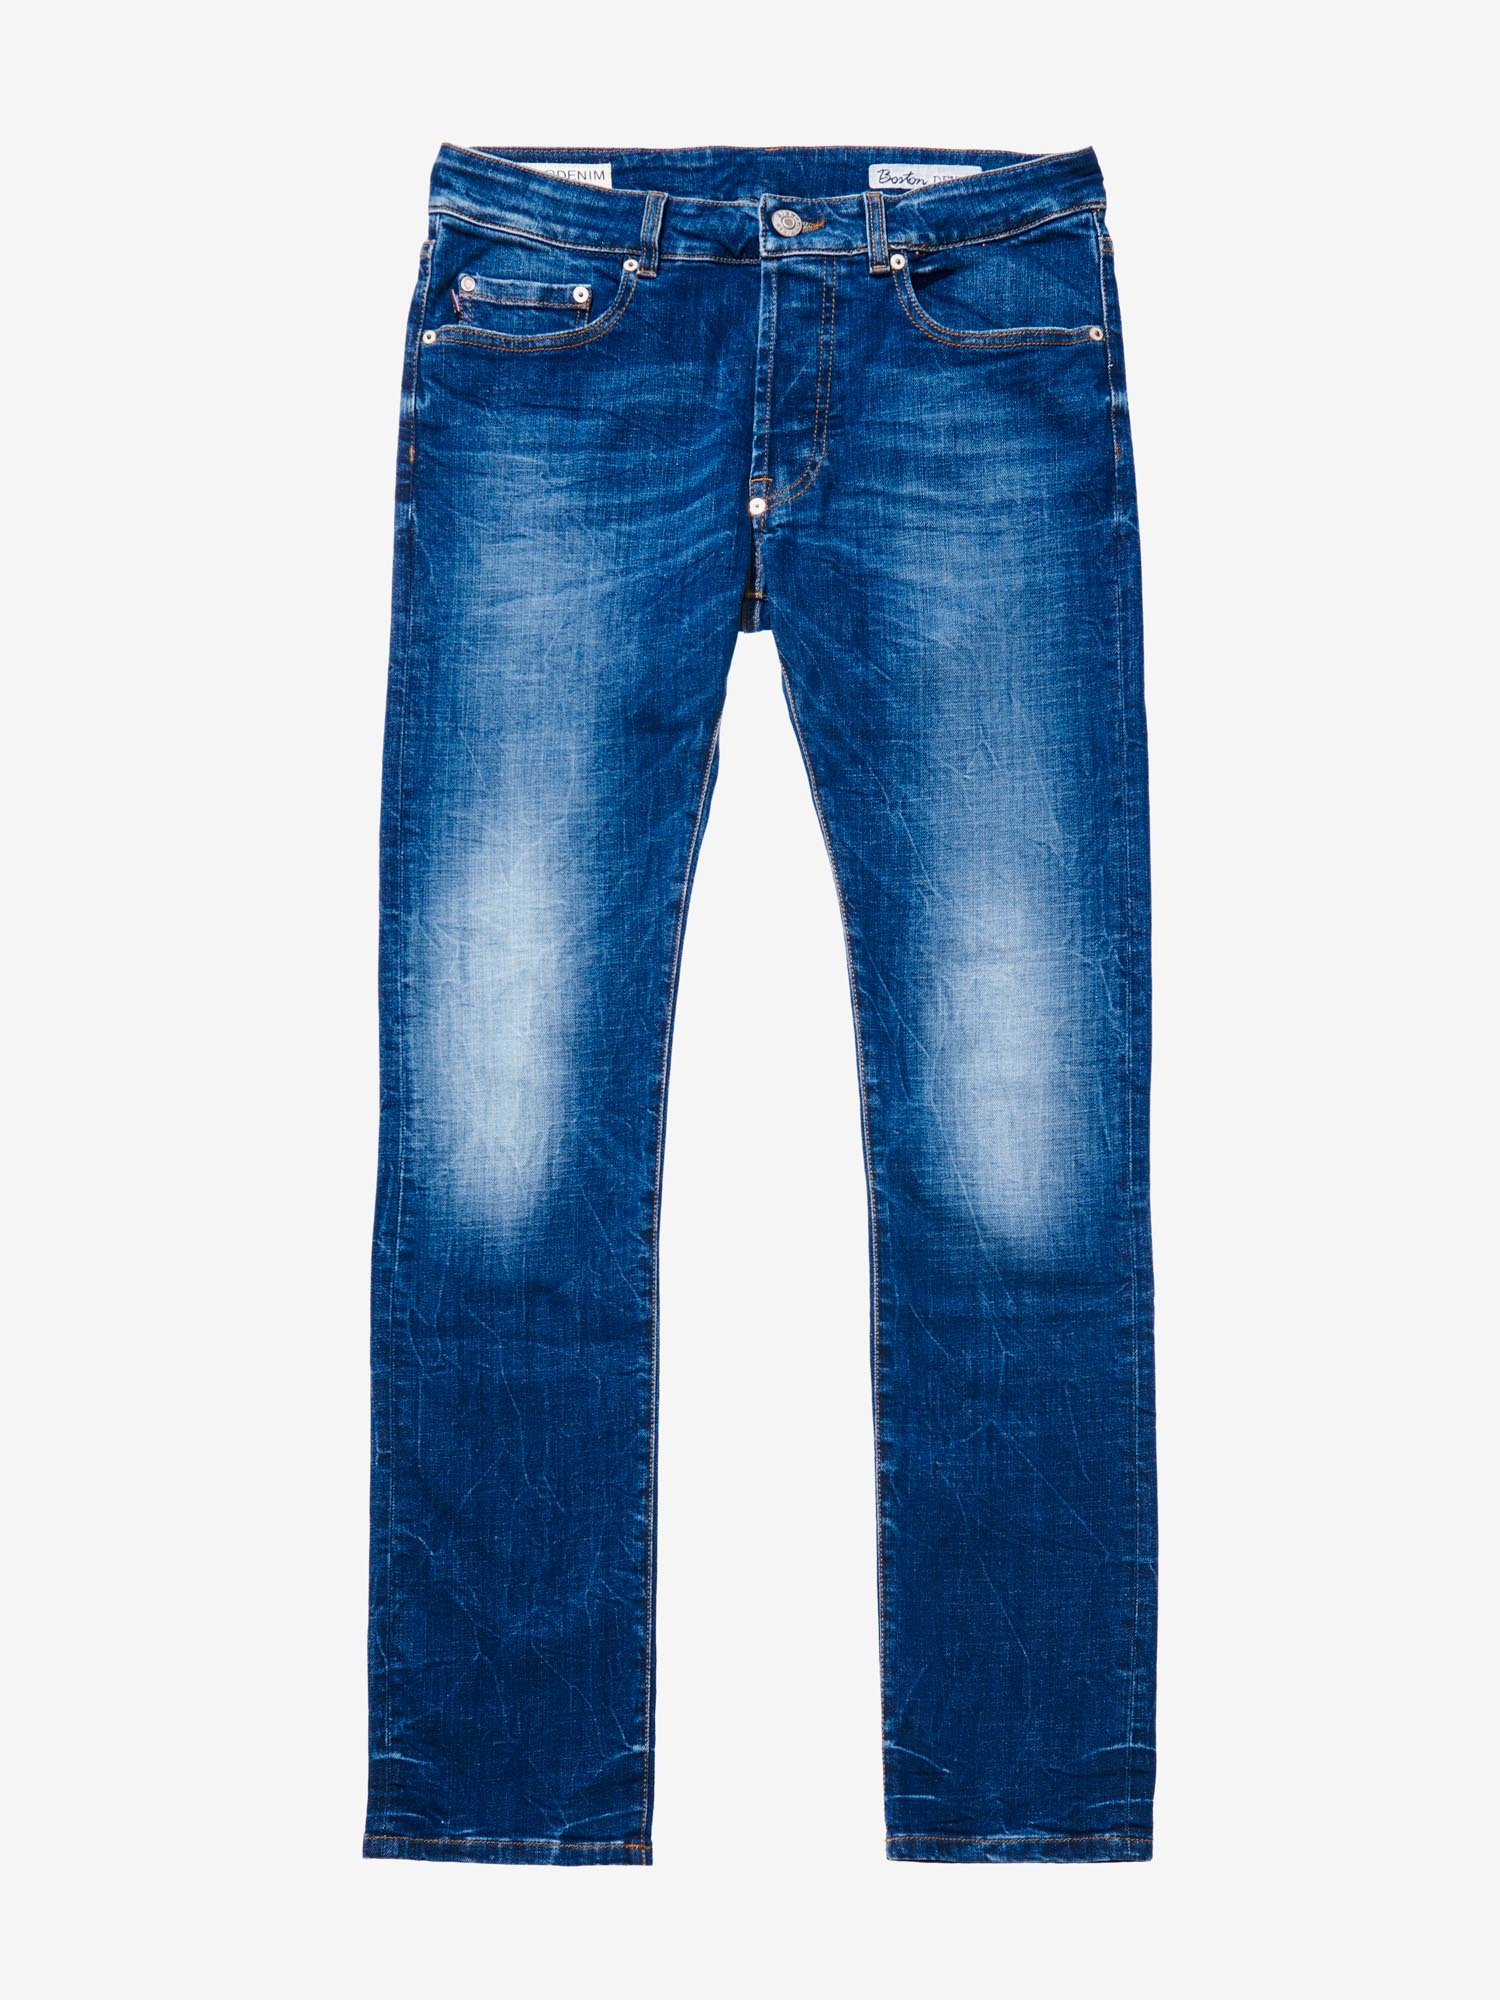 Blauer - DENIM BOOT CUT STONE WASHED - Denim Washing - Blauer